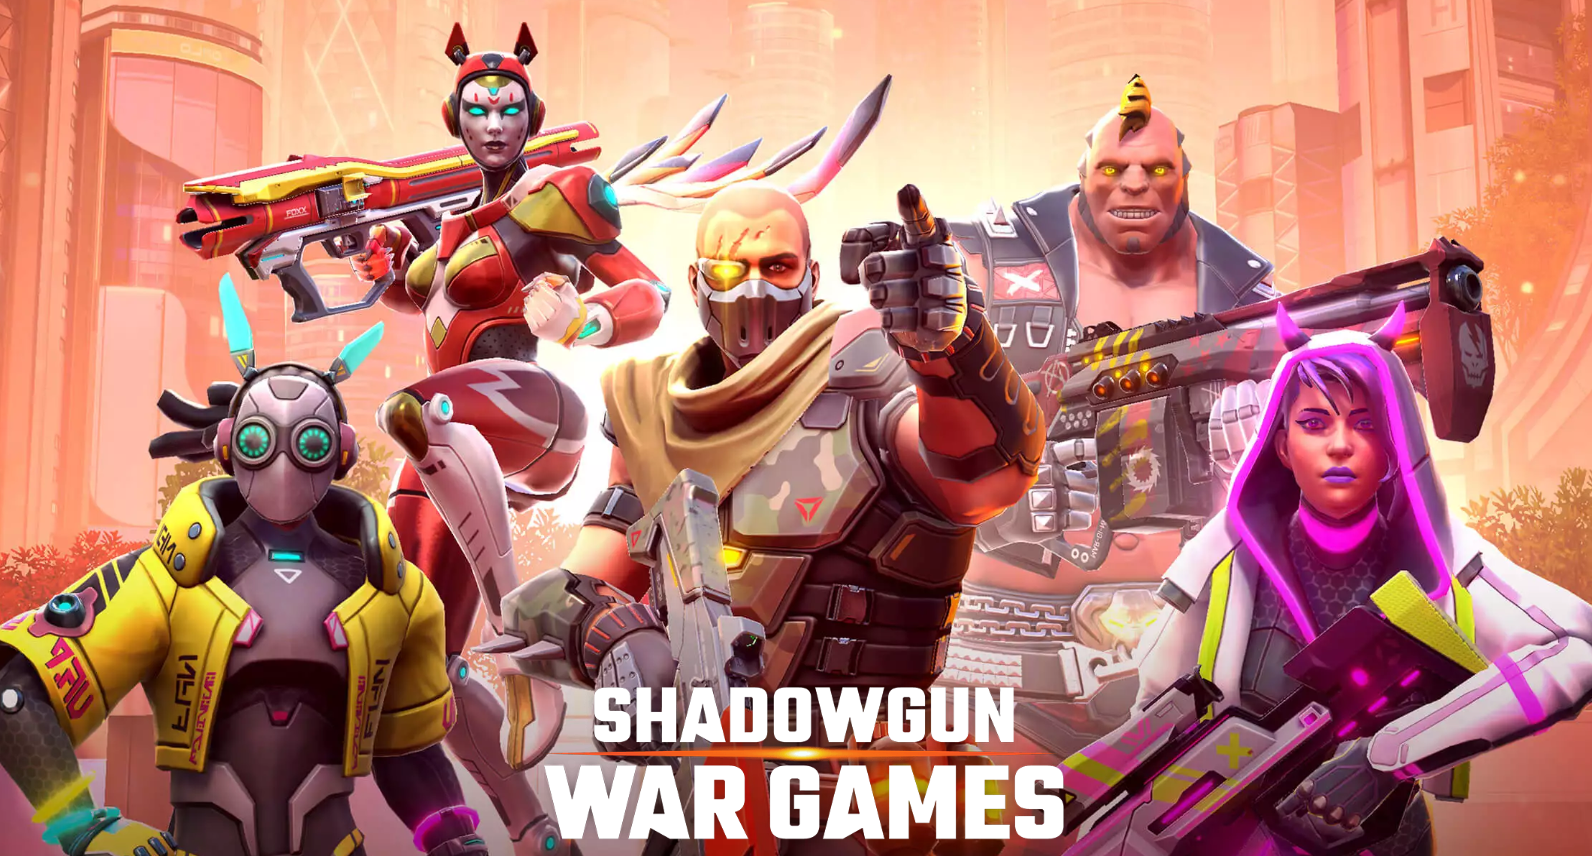 Shadowgun War Games: First Impressions - The Mobile Overwatch? 17